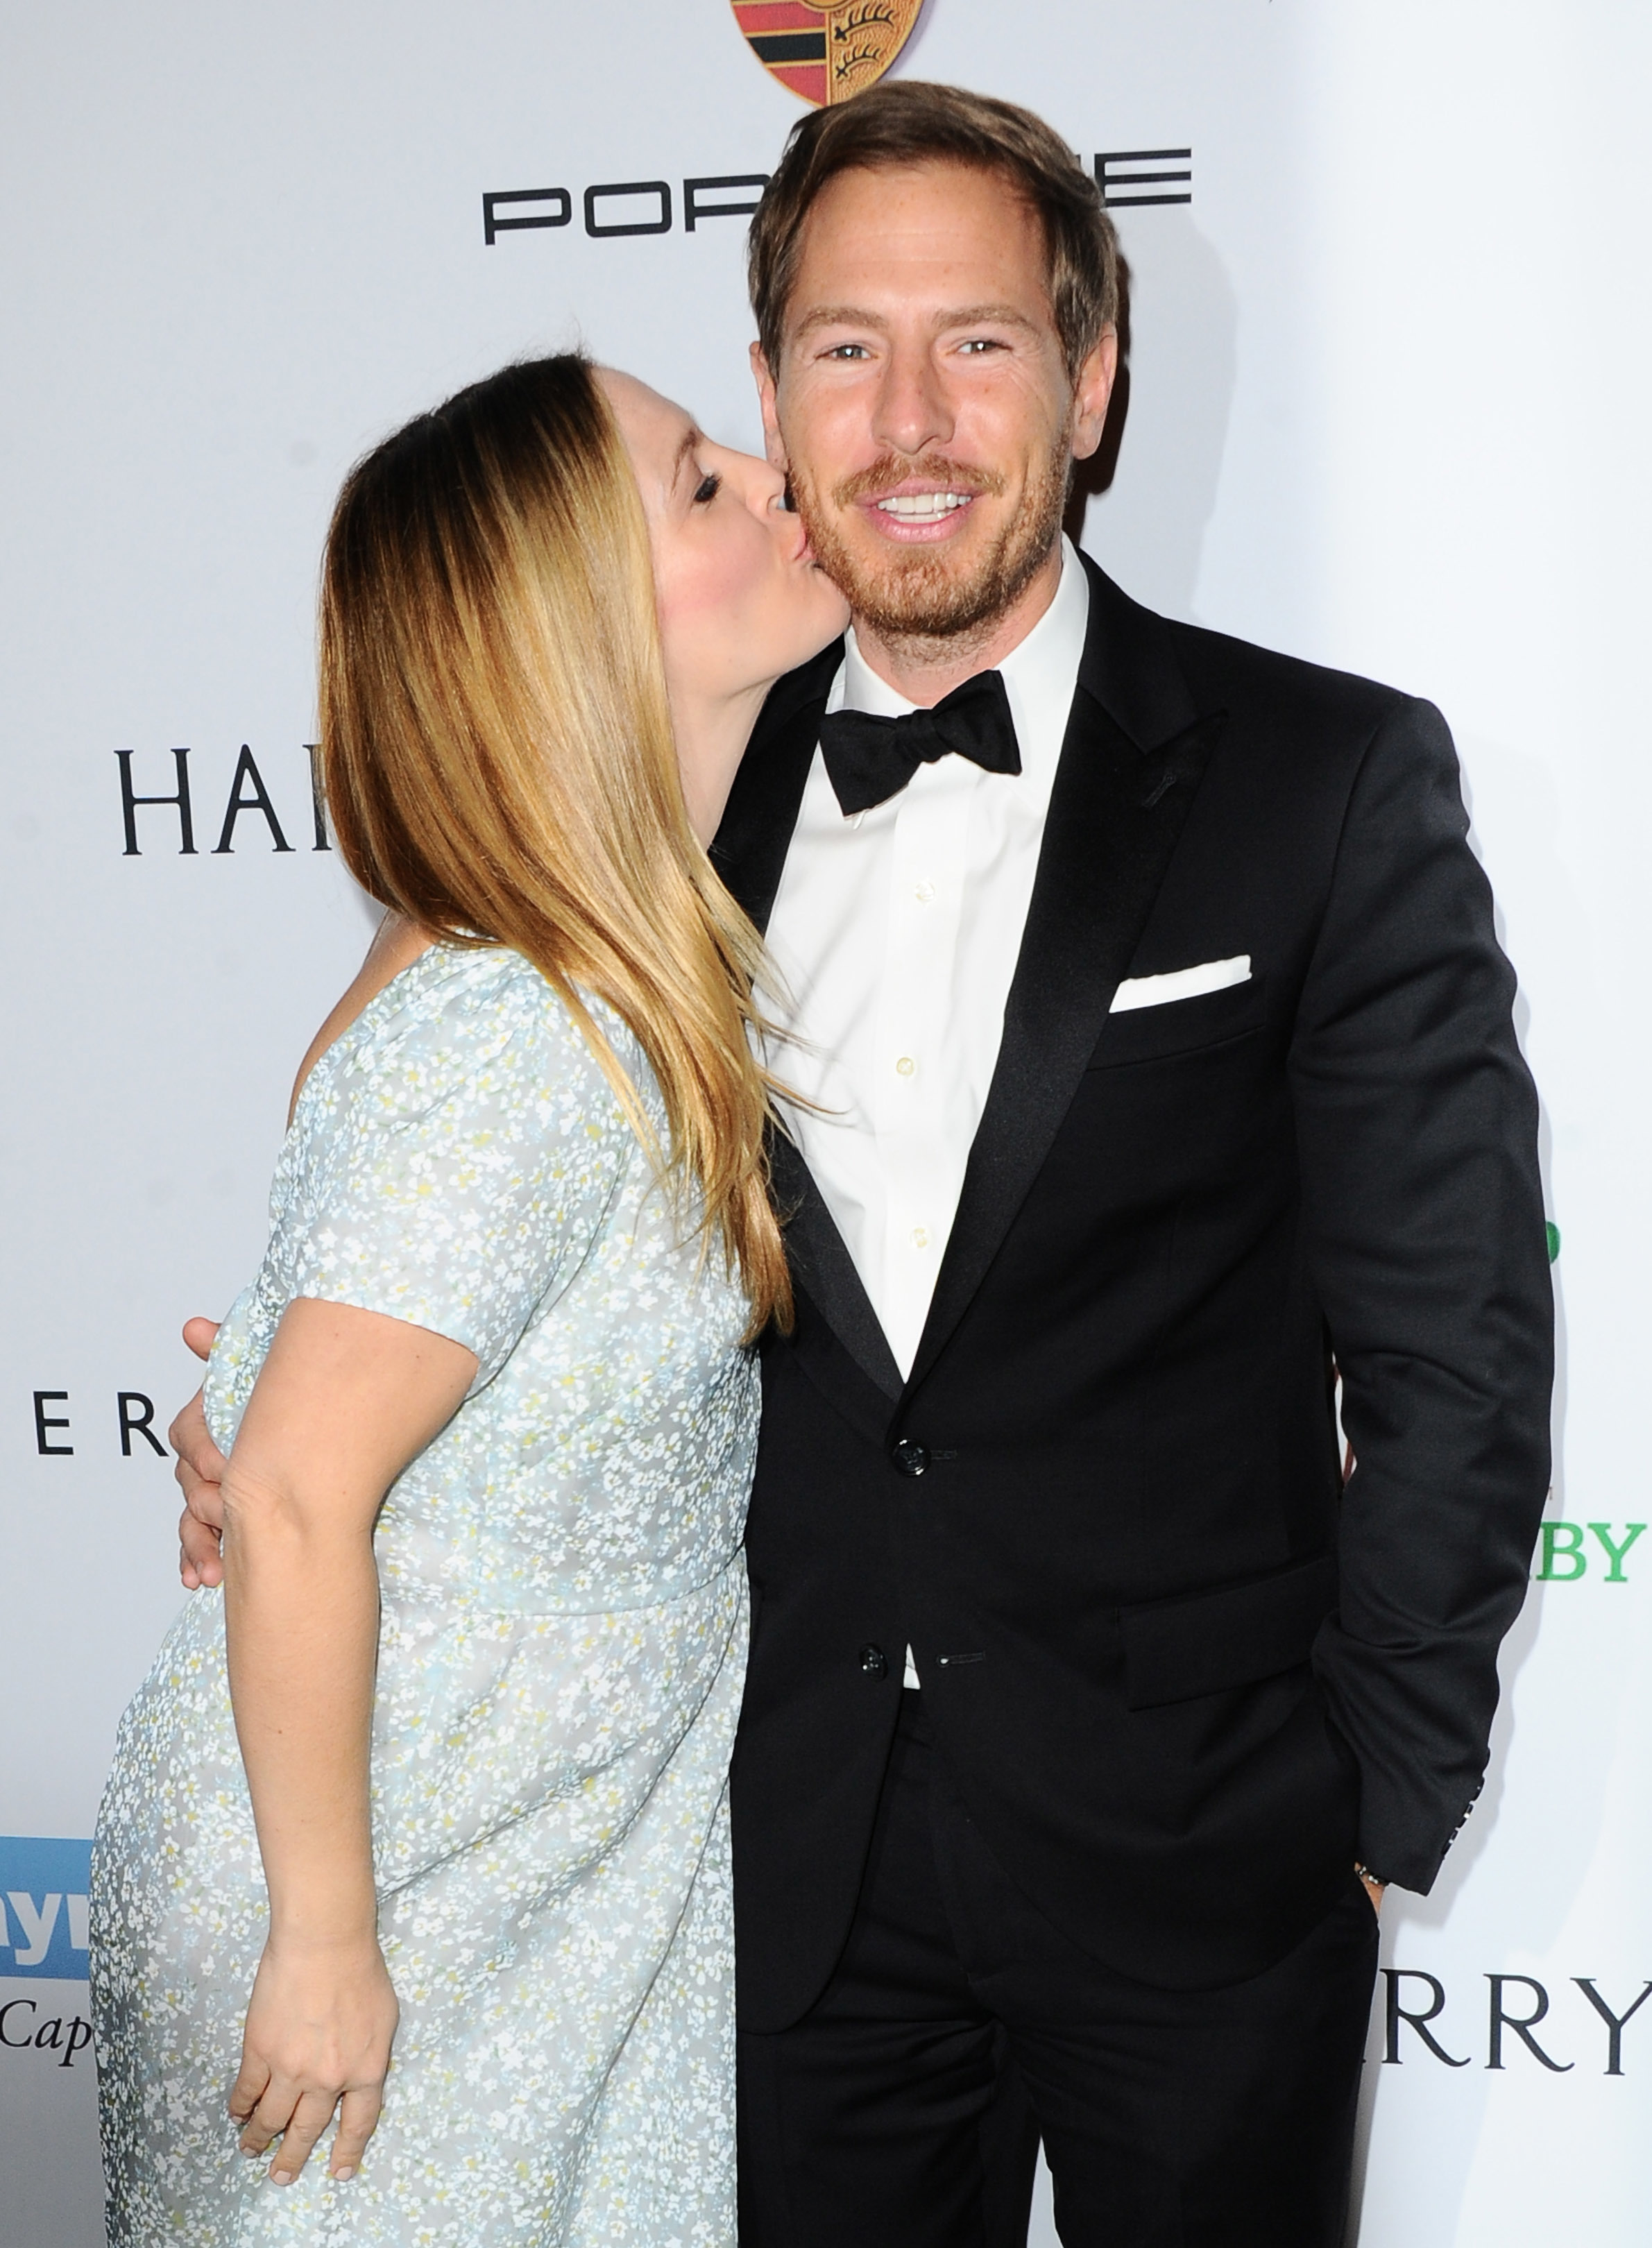 Drew Barrymore and Will Kopelman are officially divorced